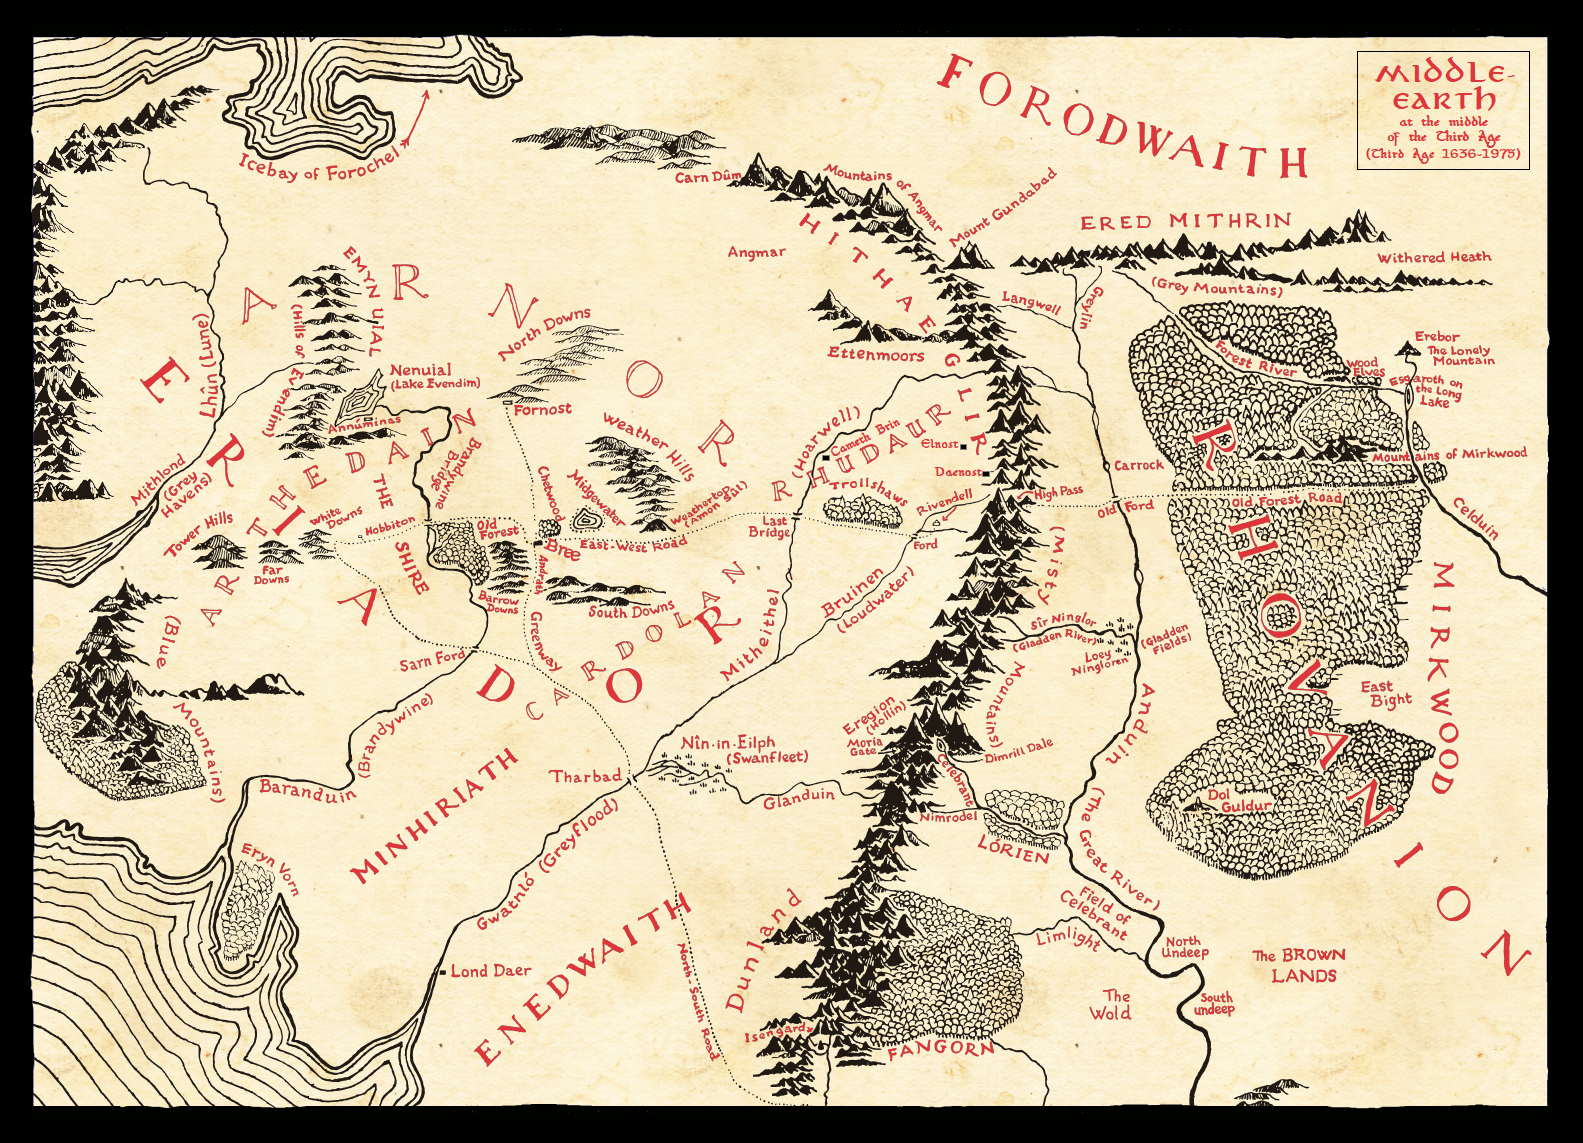 It is a picture of Nifty Printable Map of Middle Earth